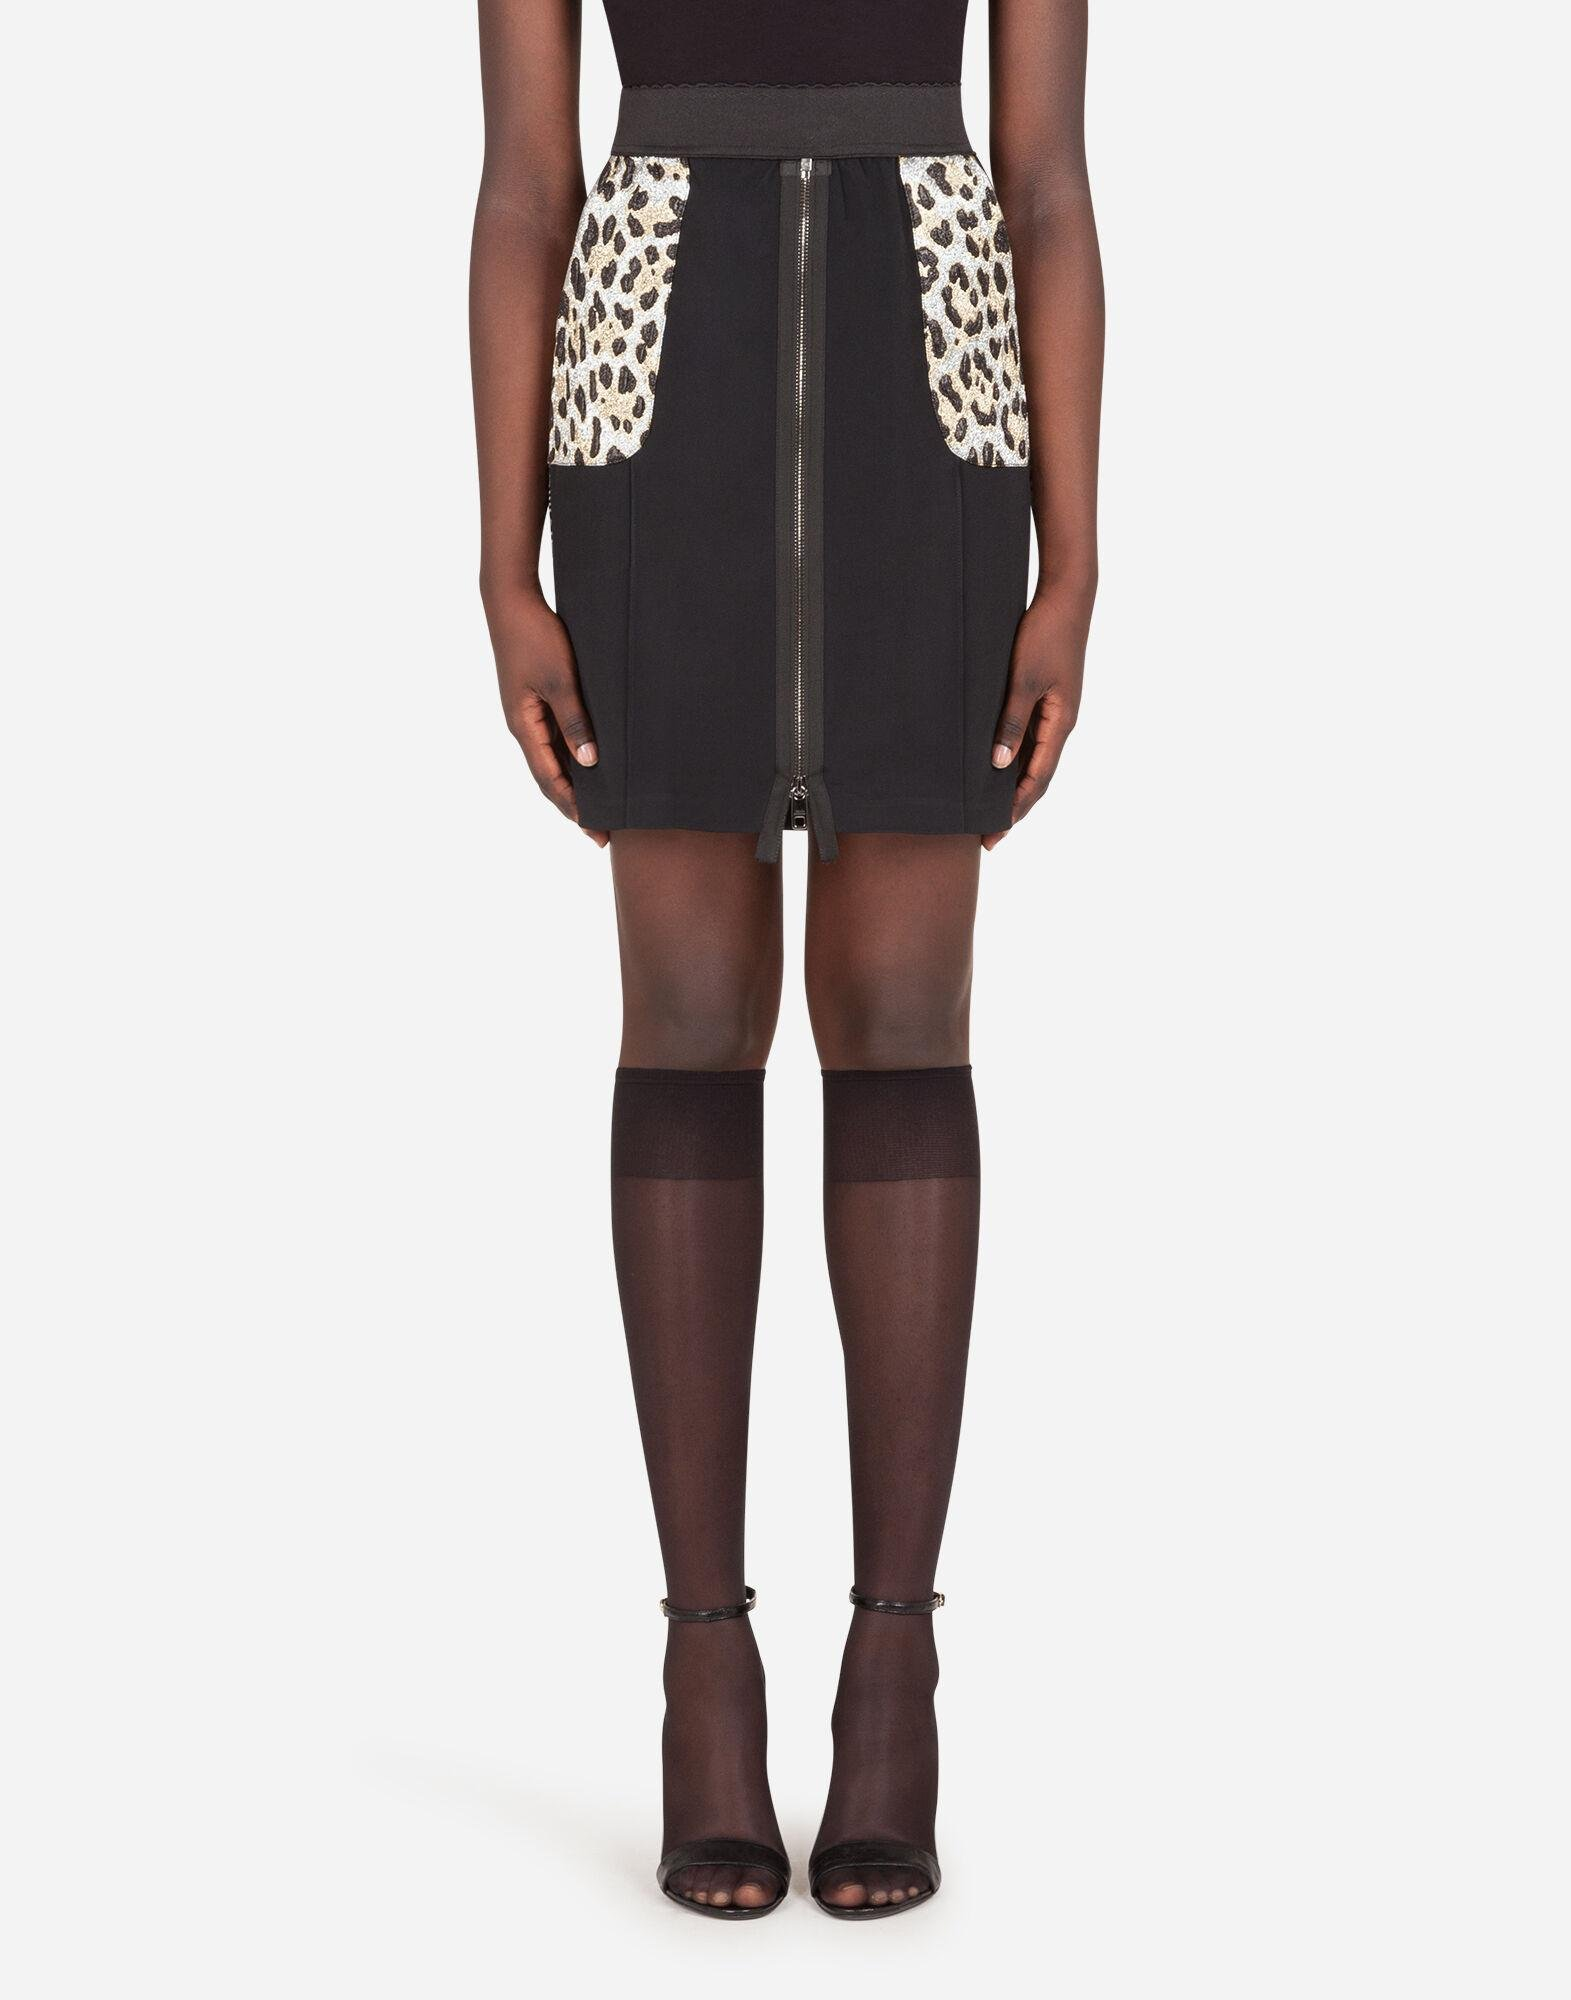 Cady skirt with leopard-print pockets